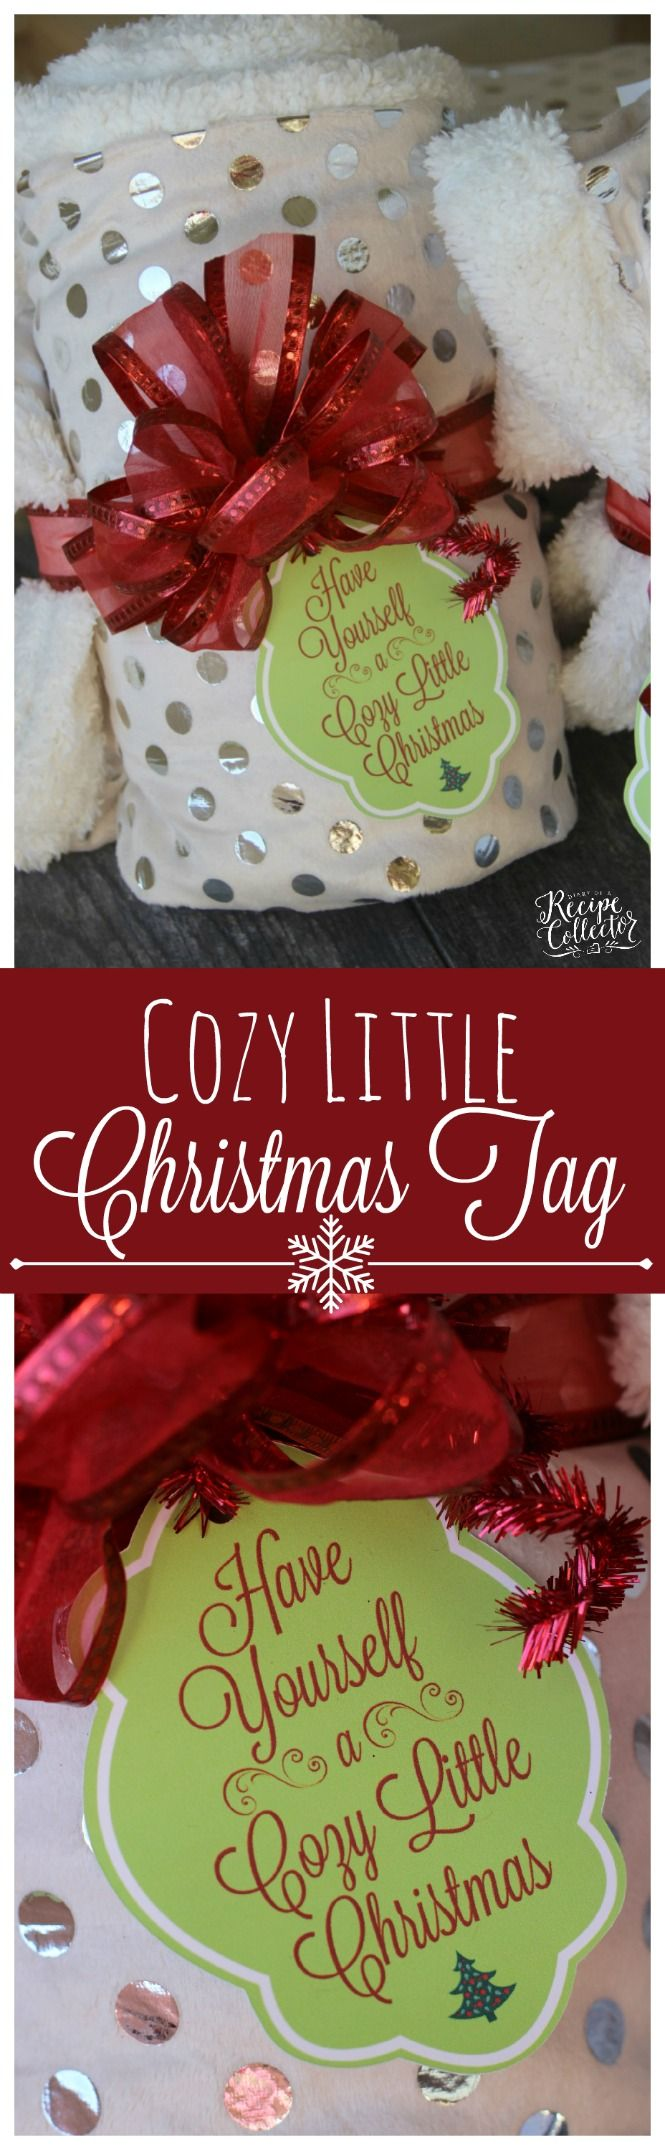 Cozy Little Christmas Tag and Blanket or Scarf Gift Idea - Perfect gift idea for teachers, friends, and family. Two Christmas tag options FREE to print.